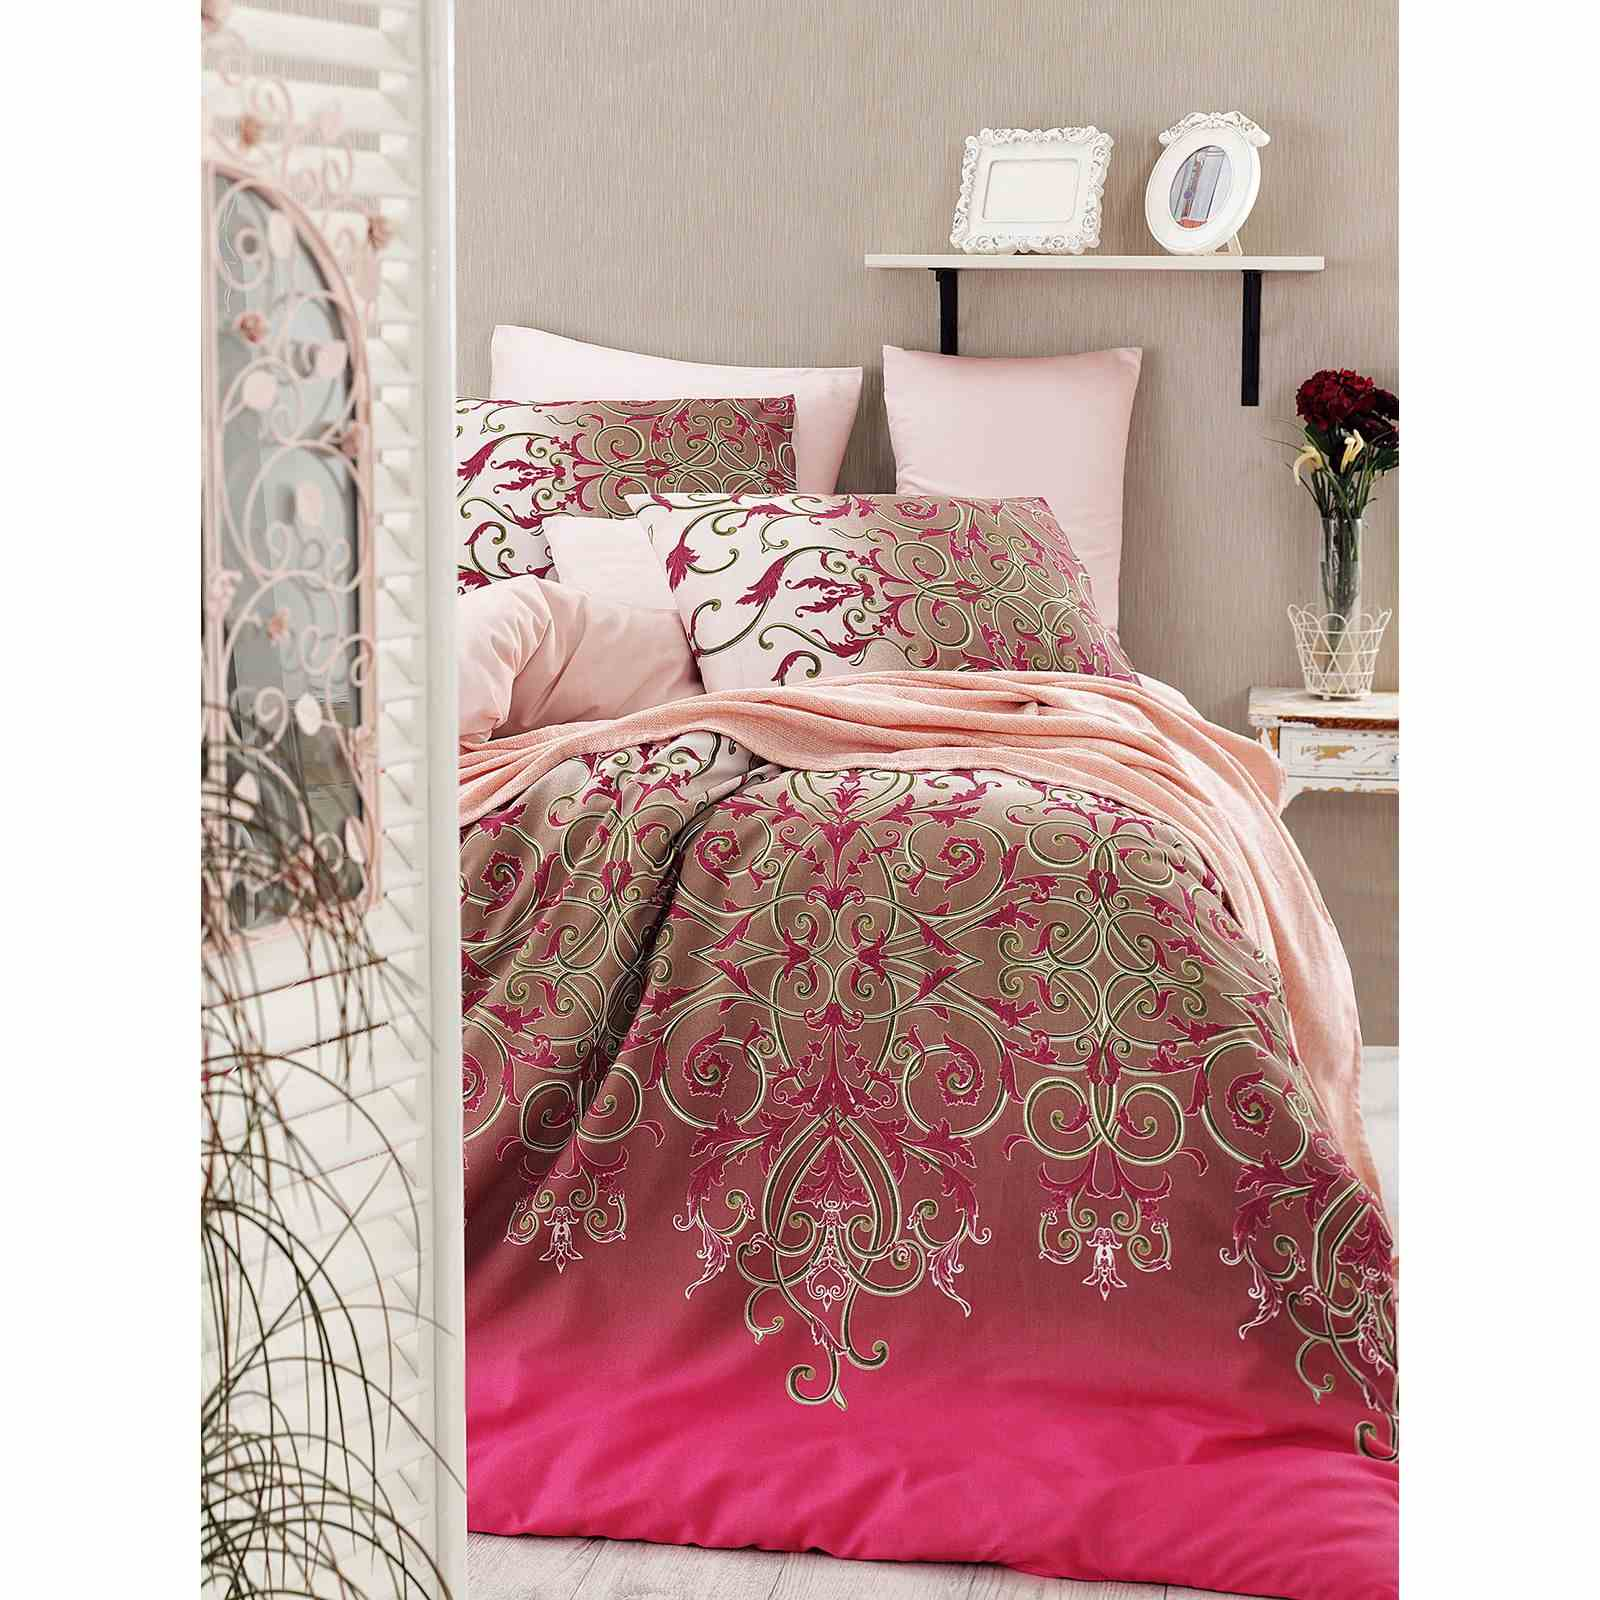 en vogue parure de lit fuchsia brandalley. Black Bedroom Furniture Sets. Home Design Ideas